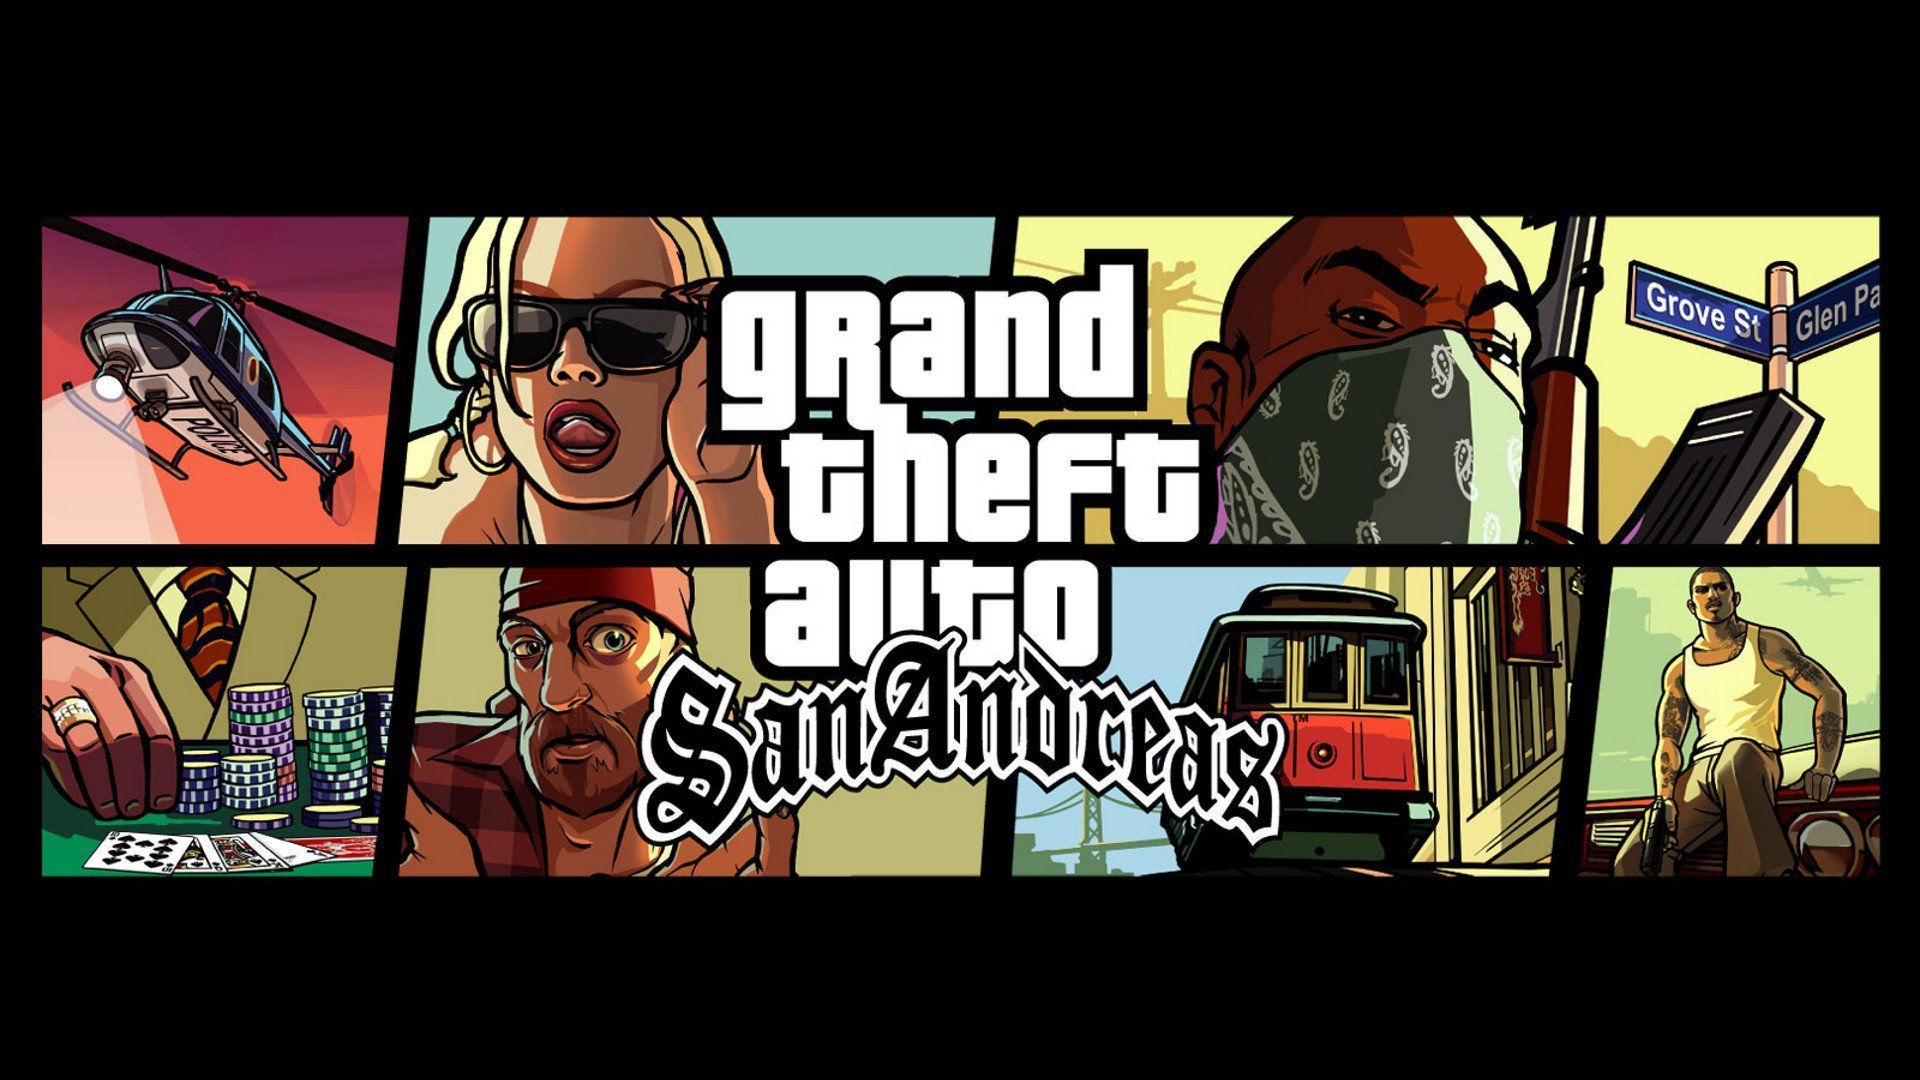 1920x1080 Grand Theft Auto San Andreas Wallpaper Background Image